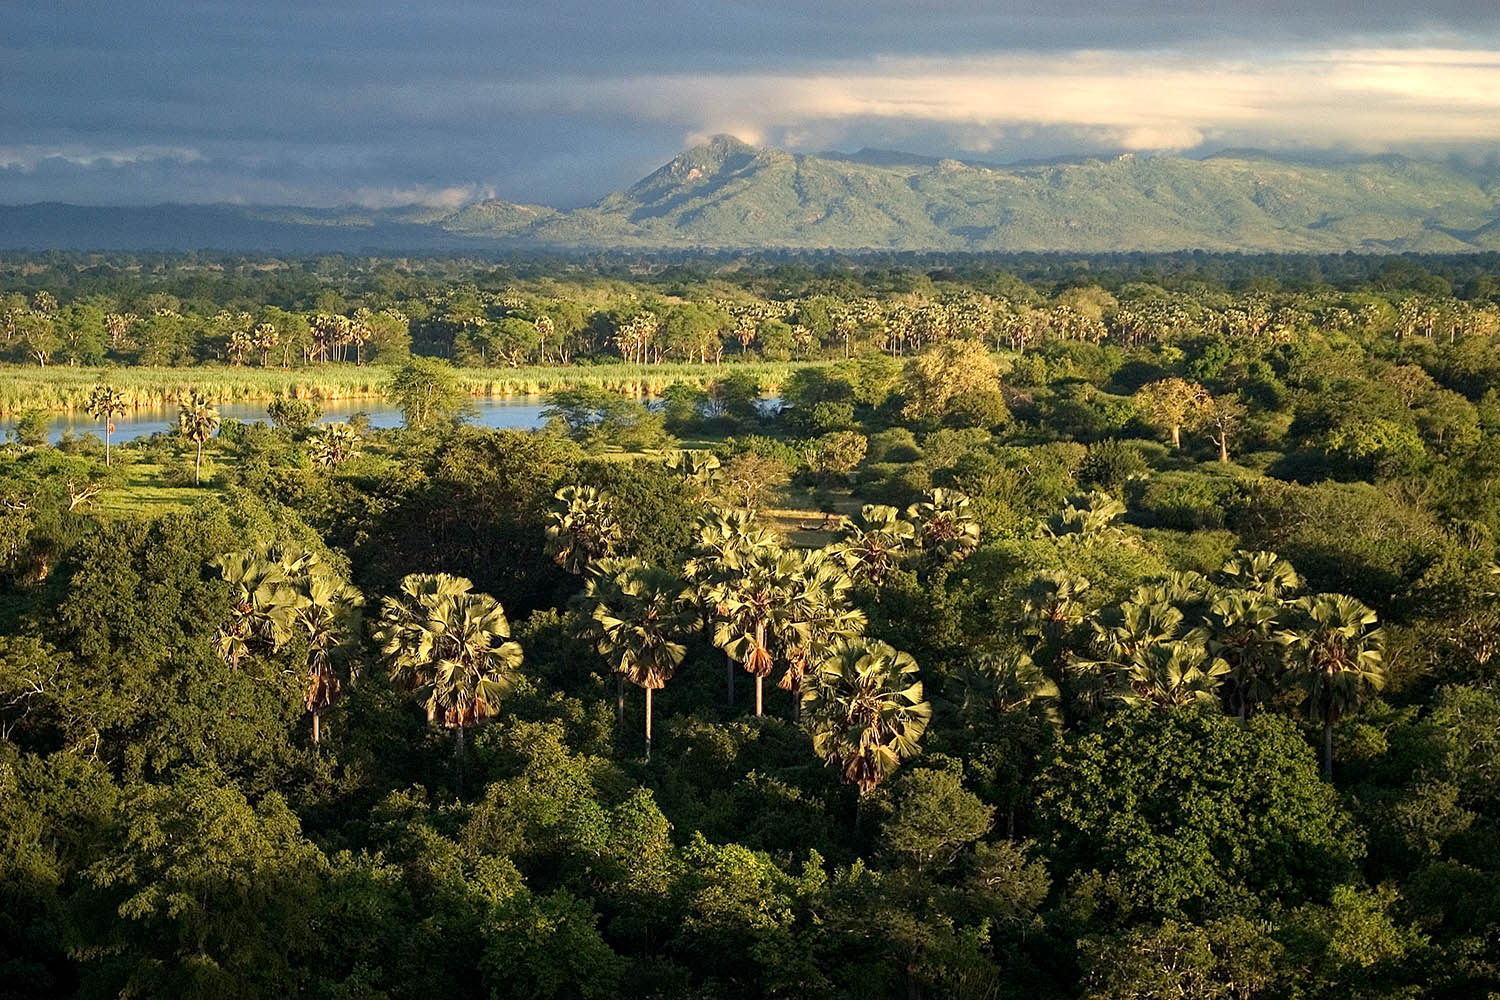 liwonde national park malawian-style-malawi-adventures-experiences-holidays-specialist-tour-operator-malawi-national-parks-reserves-aerial-view